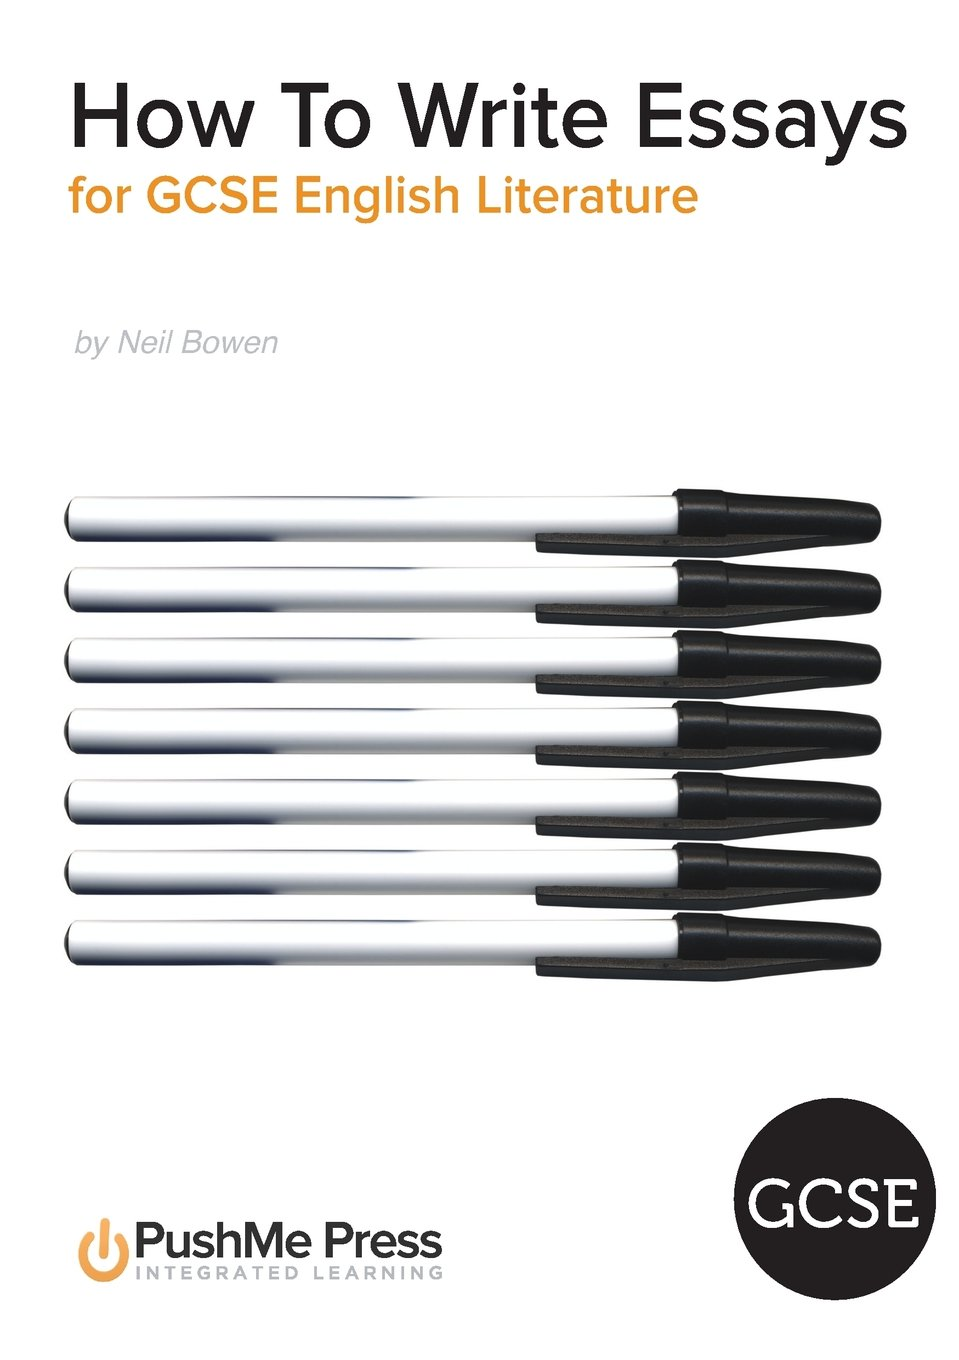 how to write essays for gcse english literature co uk how to write essays for gcse english literature co uk neil bowen 9781909618206 books